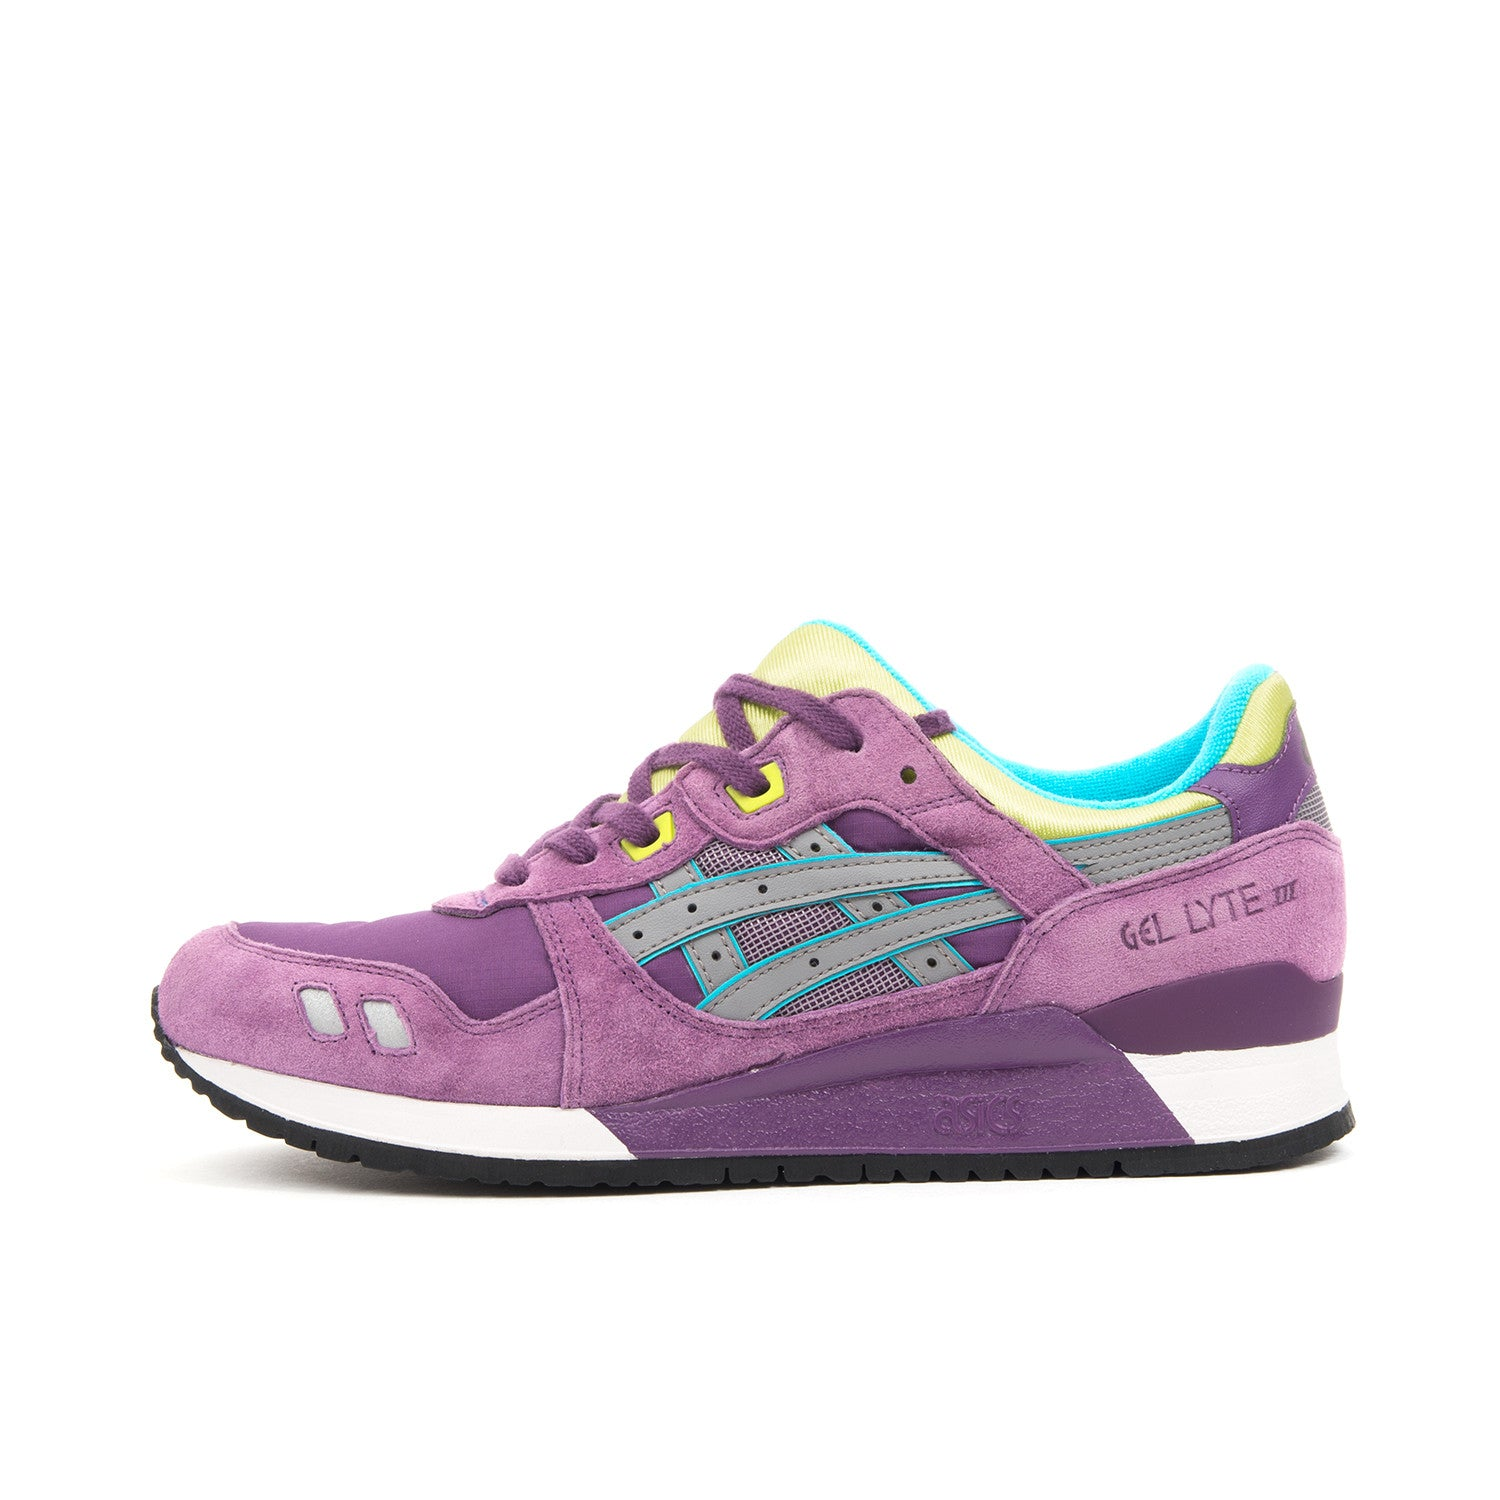 Asics Gel-Lyte III Purple Grey - HK538